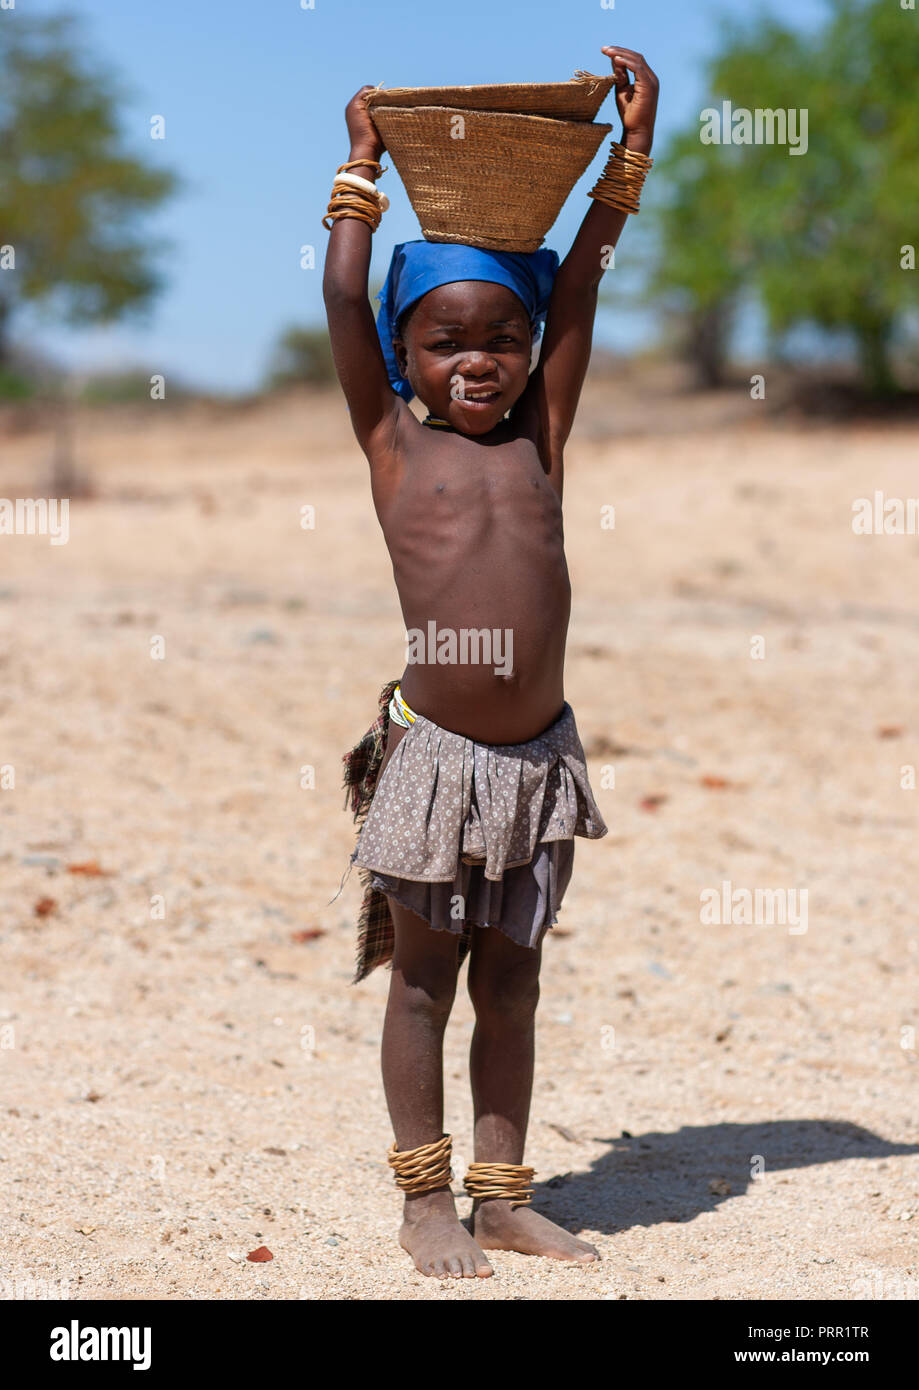 Mucubal tribe girl carrying a basket on head, Namibe Province, Virei, Angola Stock Photo